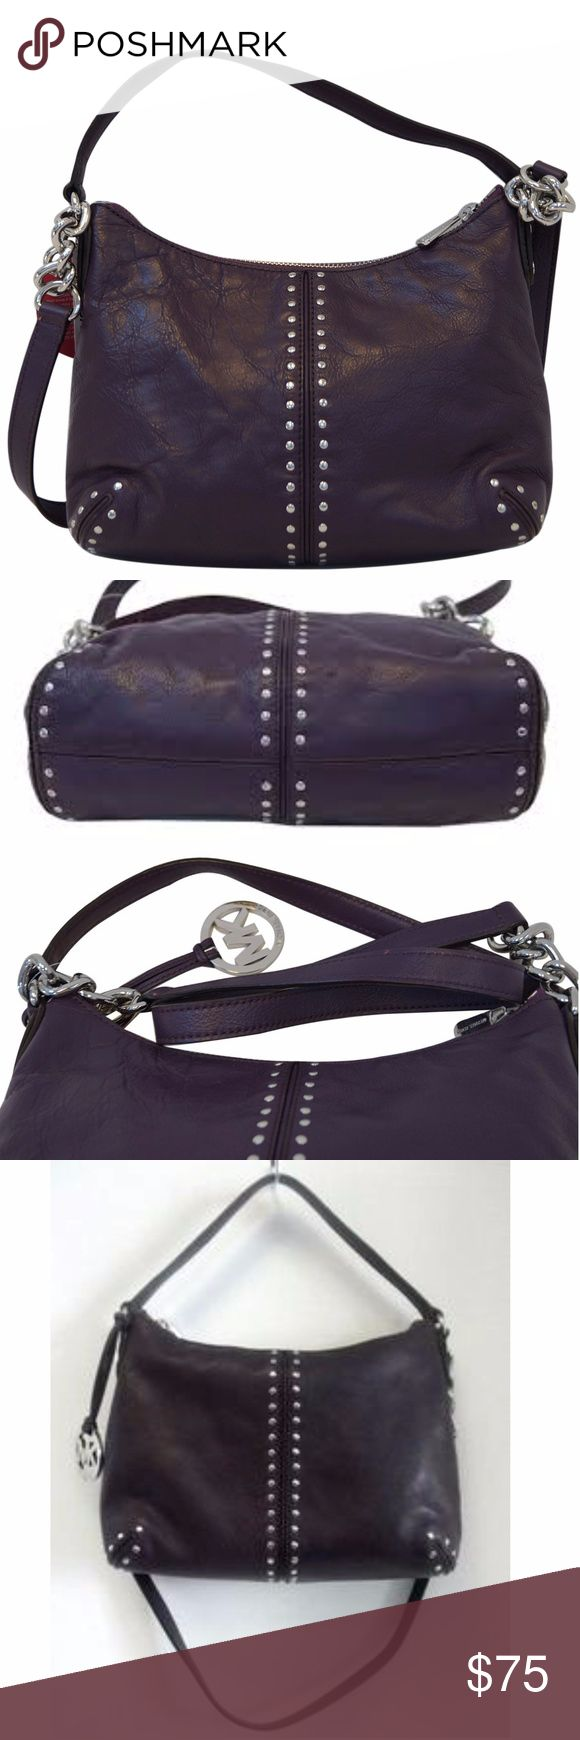 "Michael Kors Purple Leather Silver Studded Hobo Deep purple Michael Kors leather,  silver studded,  convertible hobo bag. Excellent condition.  No scratches or flaws. Ink pen stain on the interior bottom of the bag. Please see pictures.  Style: Shoulder Handbag Material: Leather Color: Purple  Size: W 12"" D 4"" H 8"" Shoulder strap drop: 35"" Michael Kors Bags Hobos"